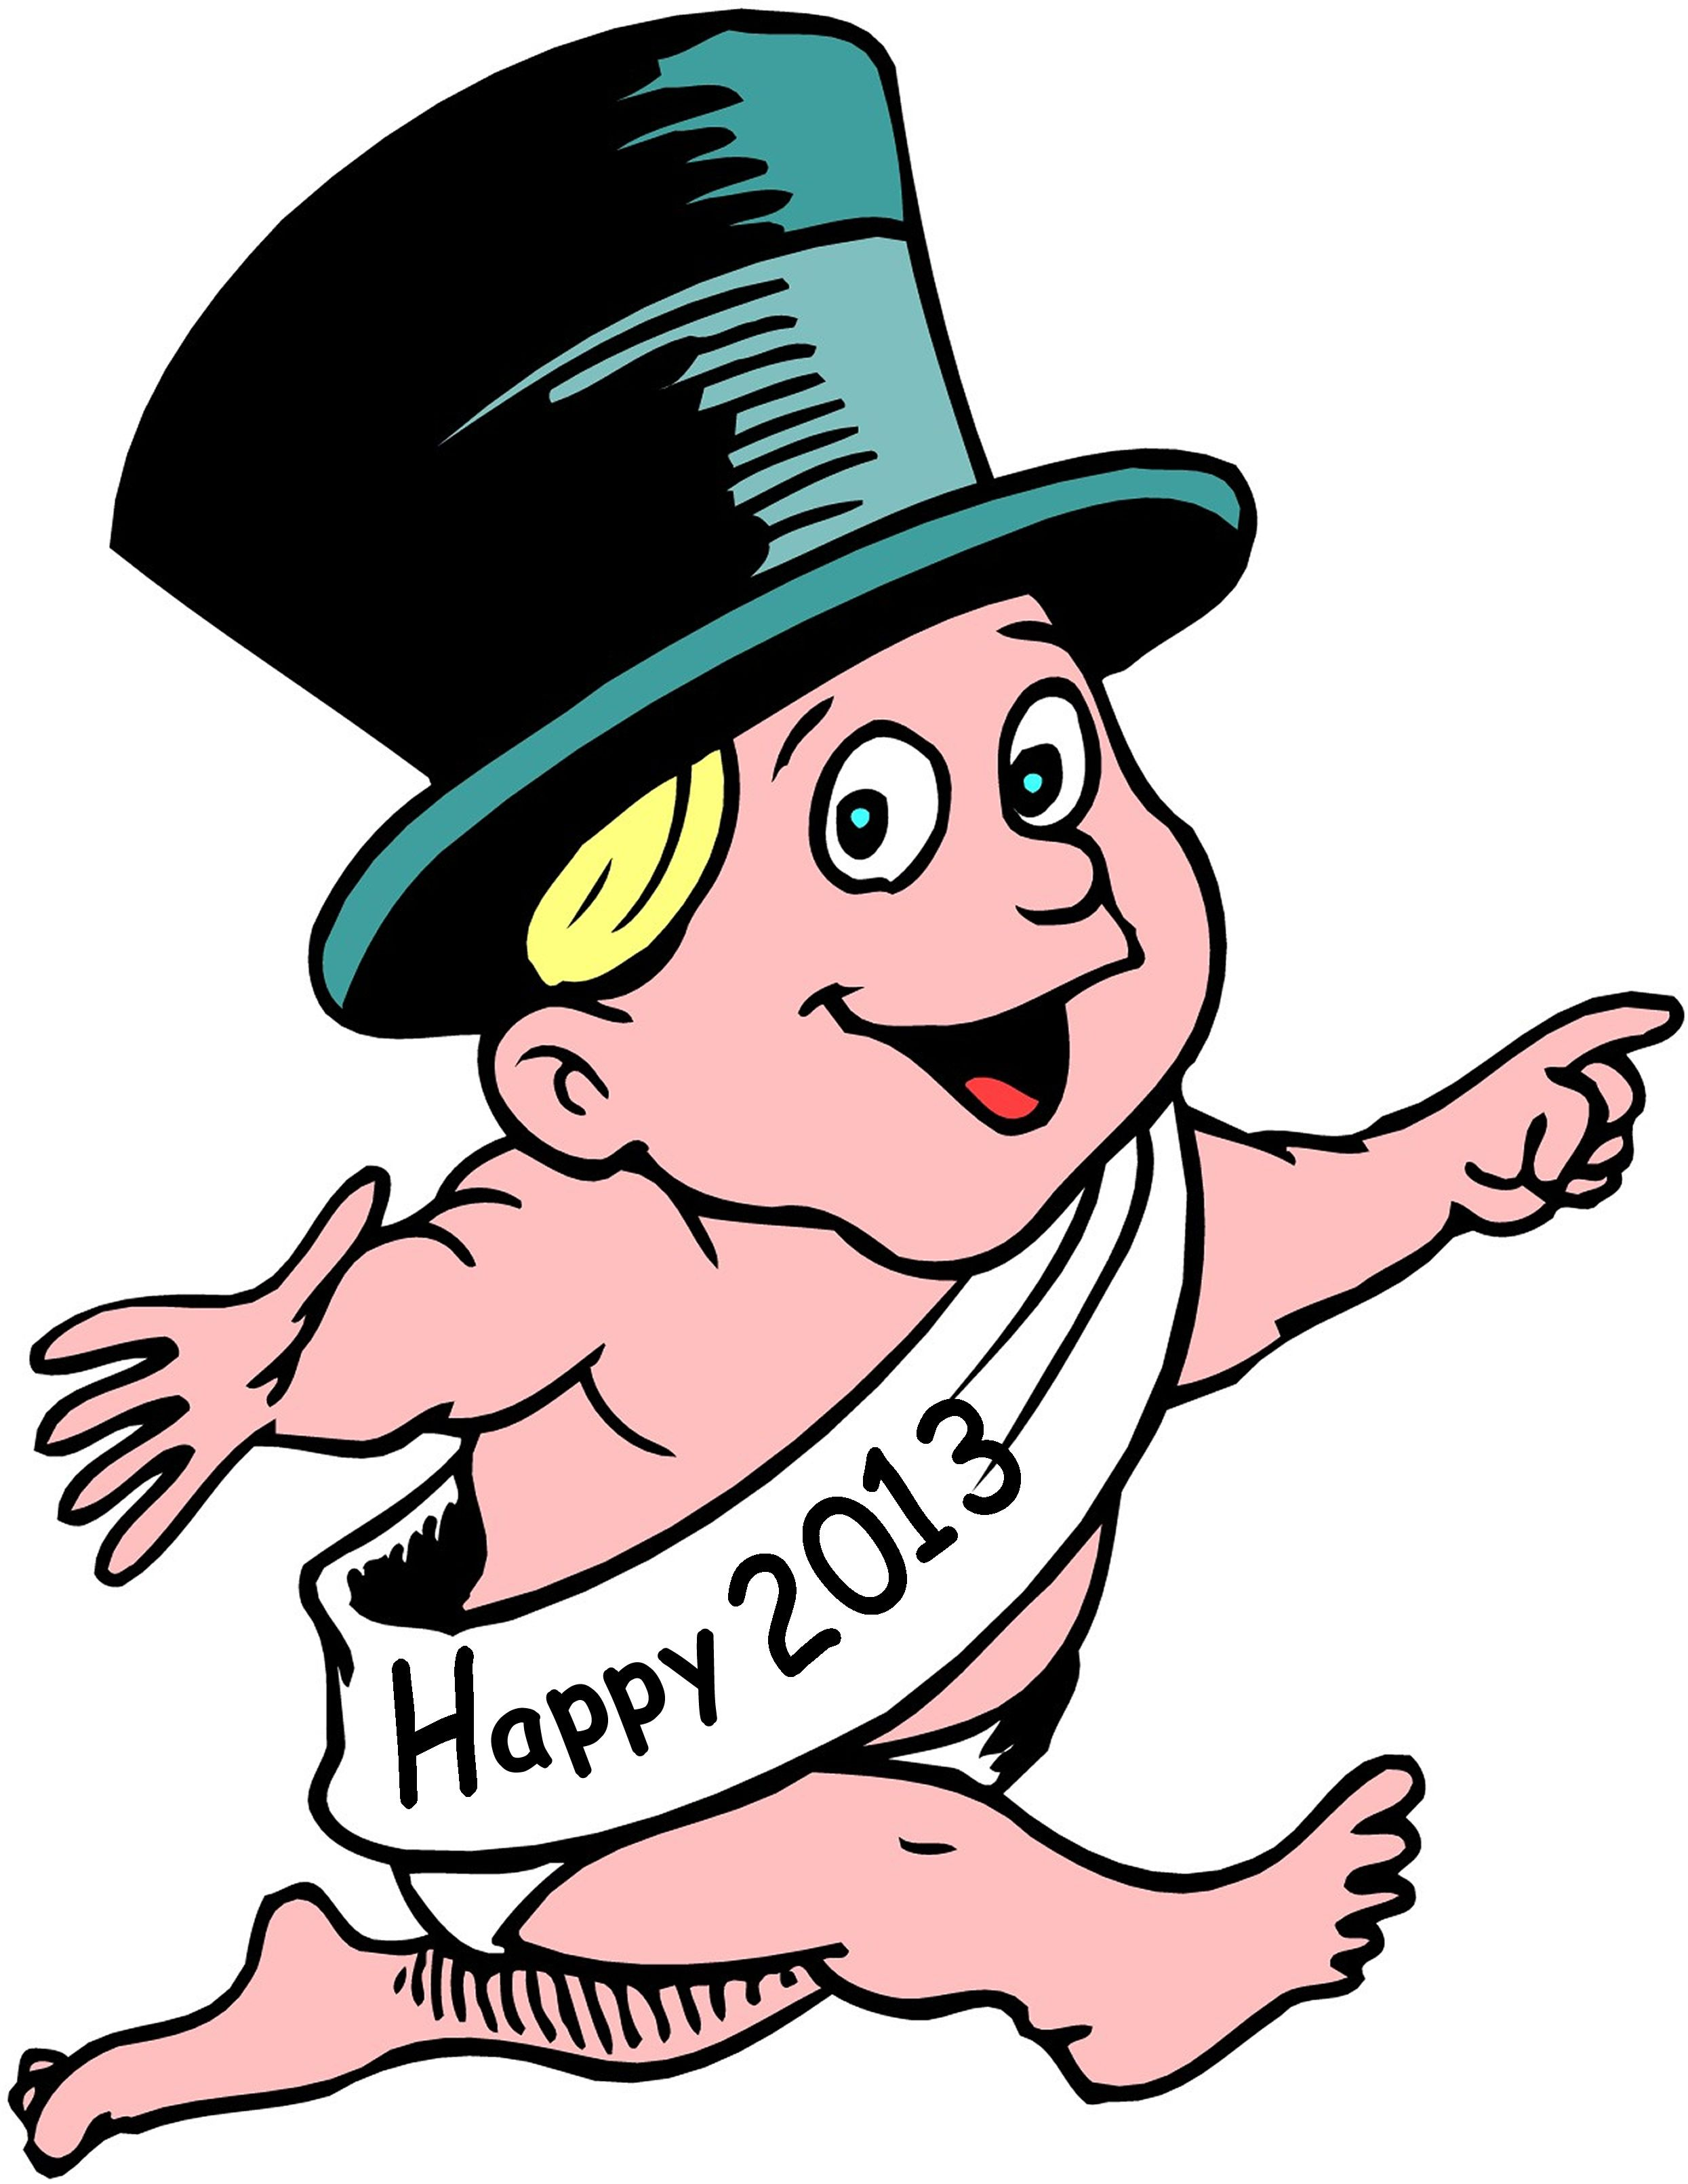 baby new year clip art new year 201312 graphics clipart new year 2012 and 2013 graphics